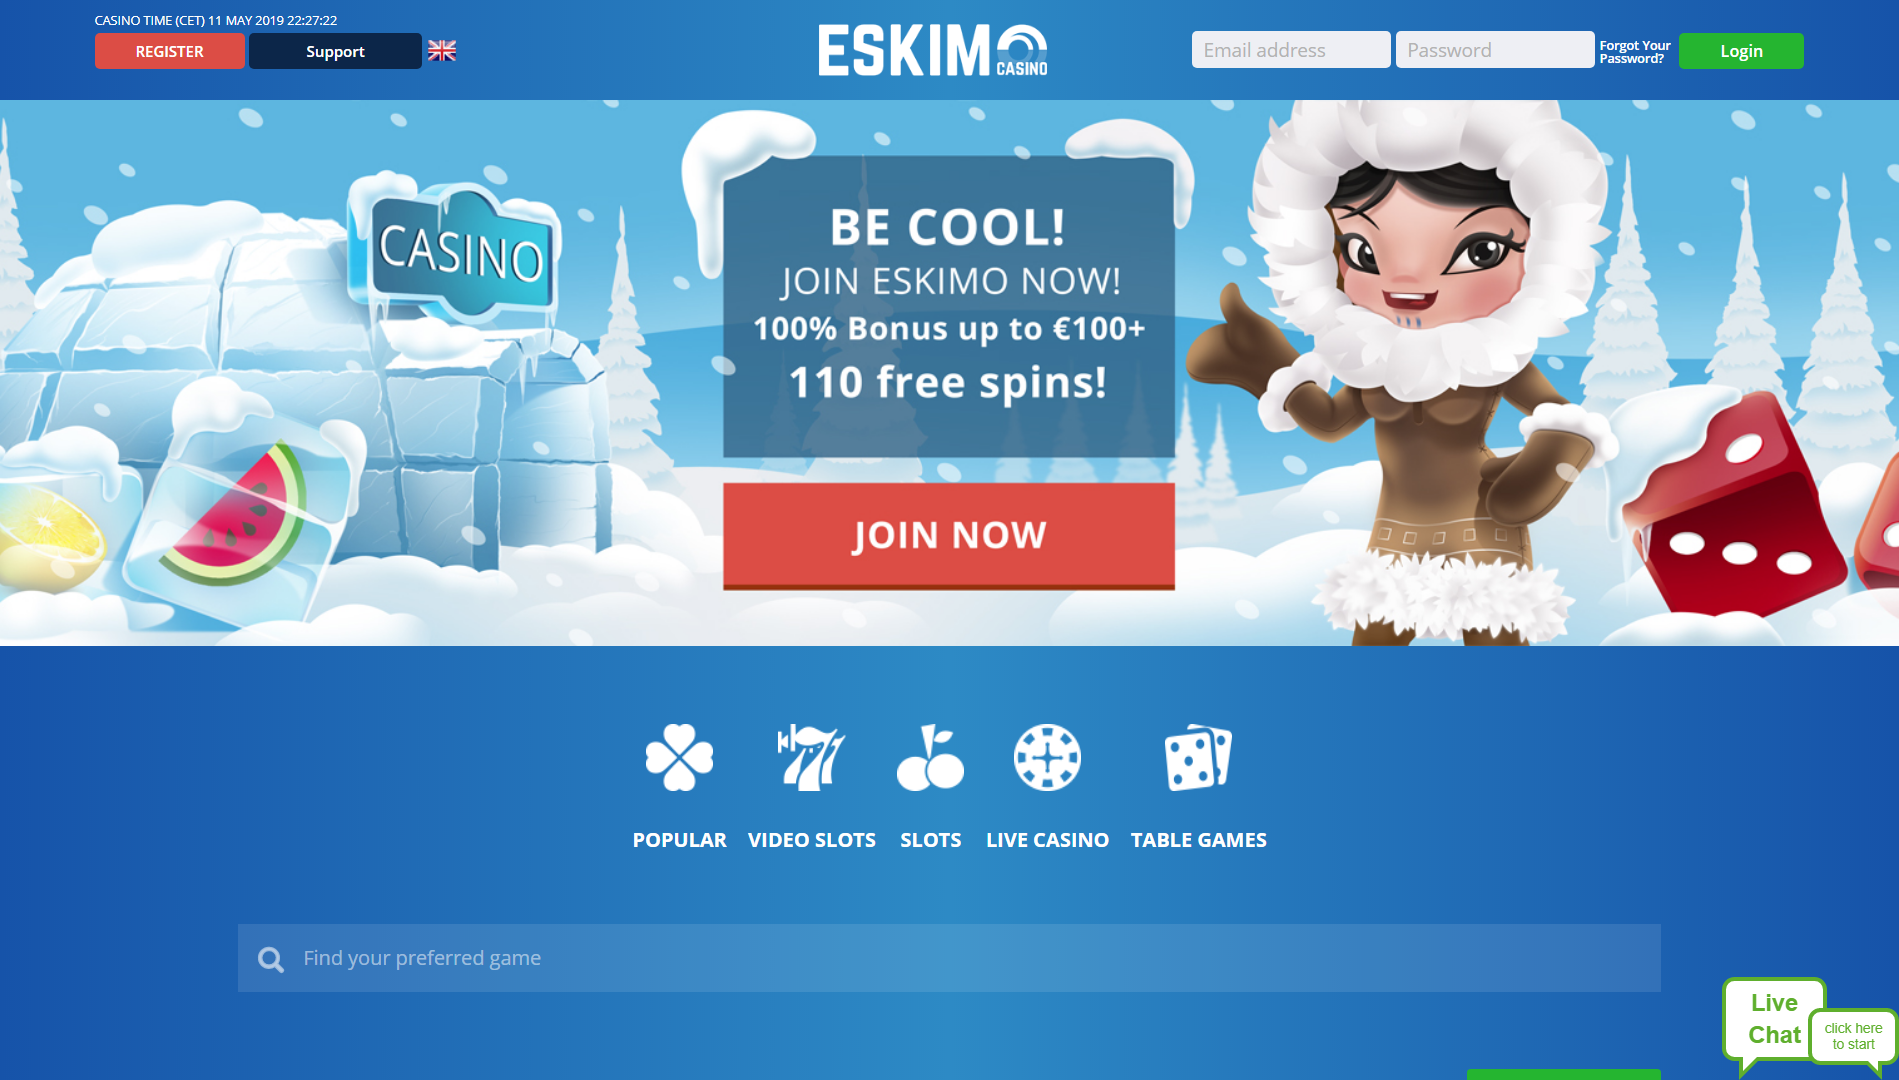 Eskimo casino home